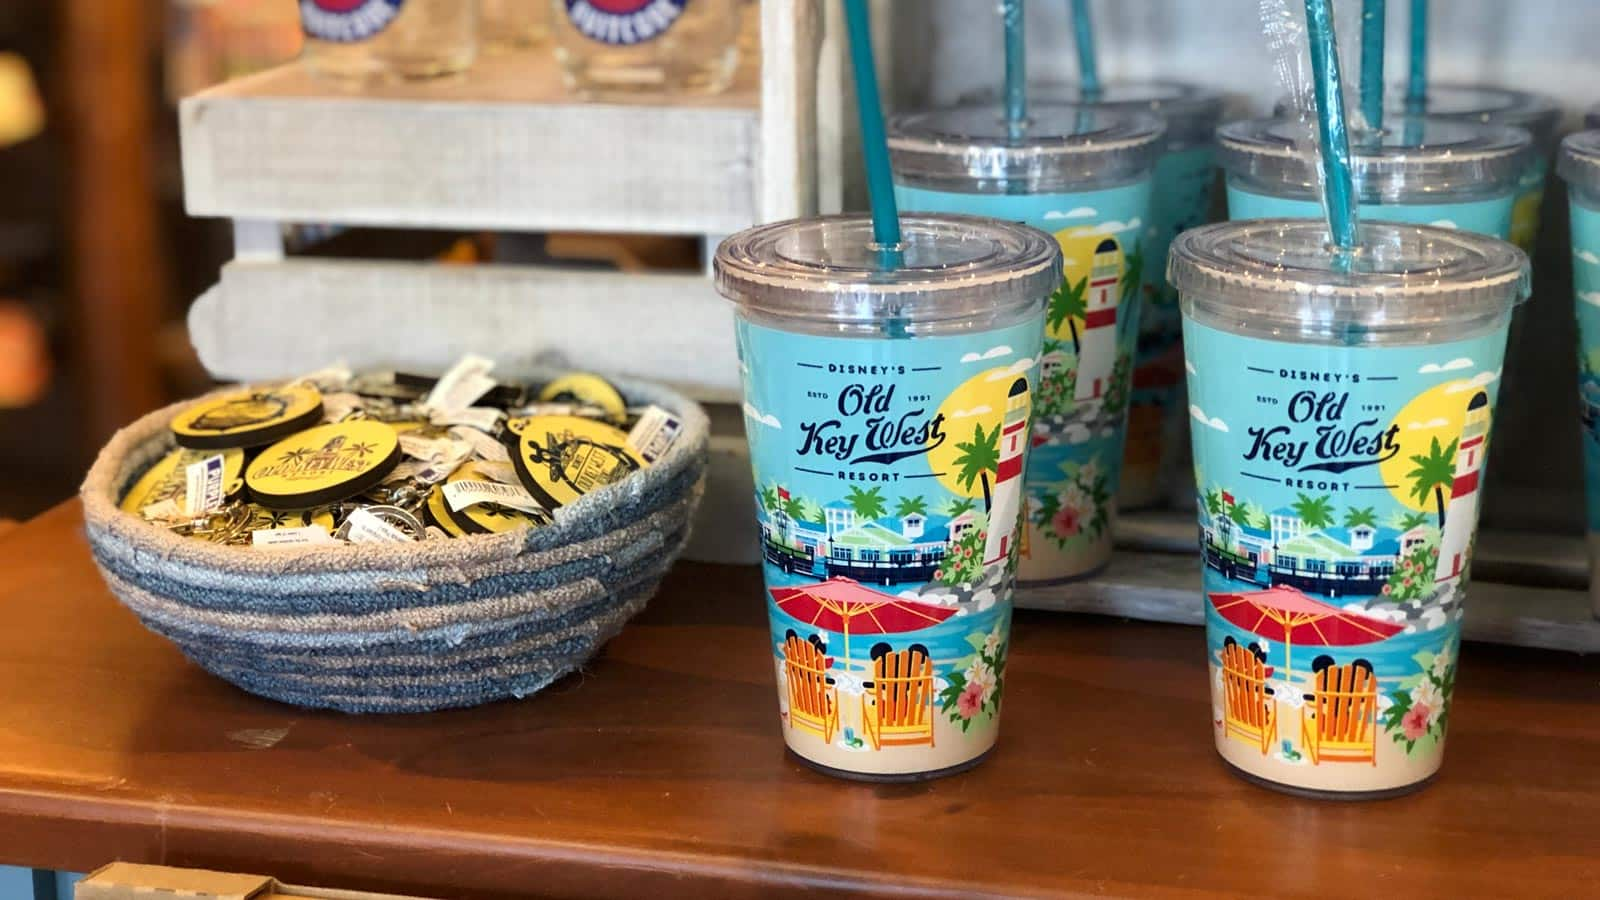 603449f0 Disney's Old Key West Resort tumblers and straws and a bowl full of Resort  key chains